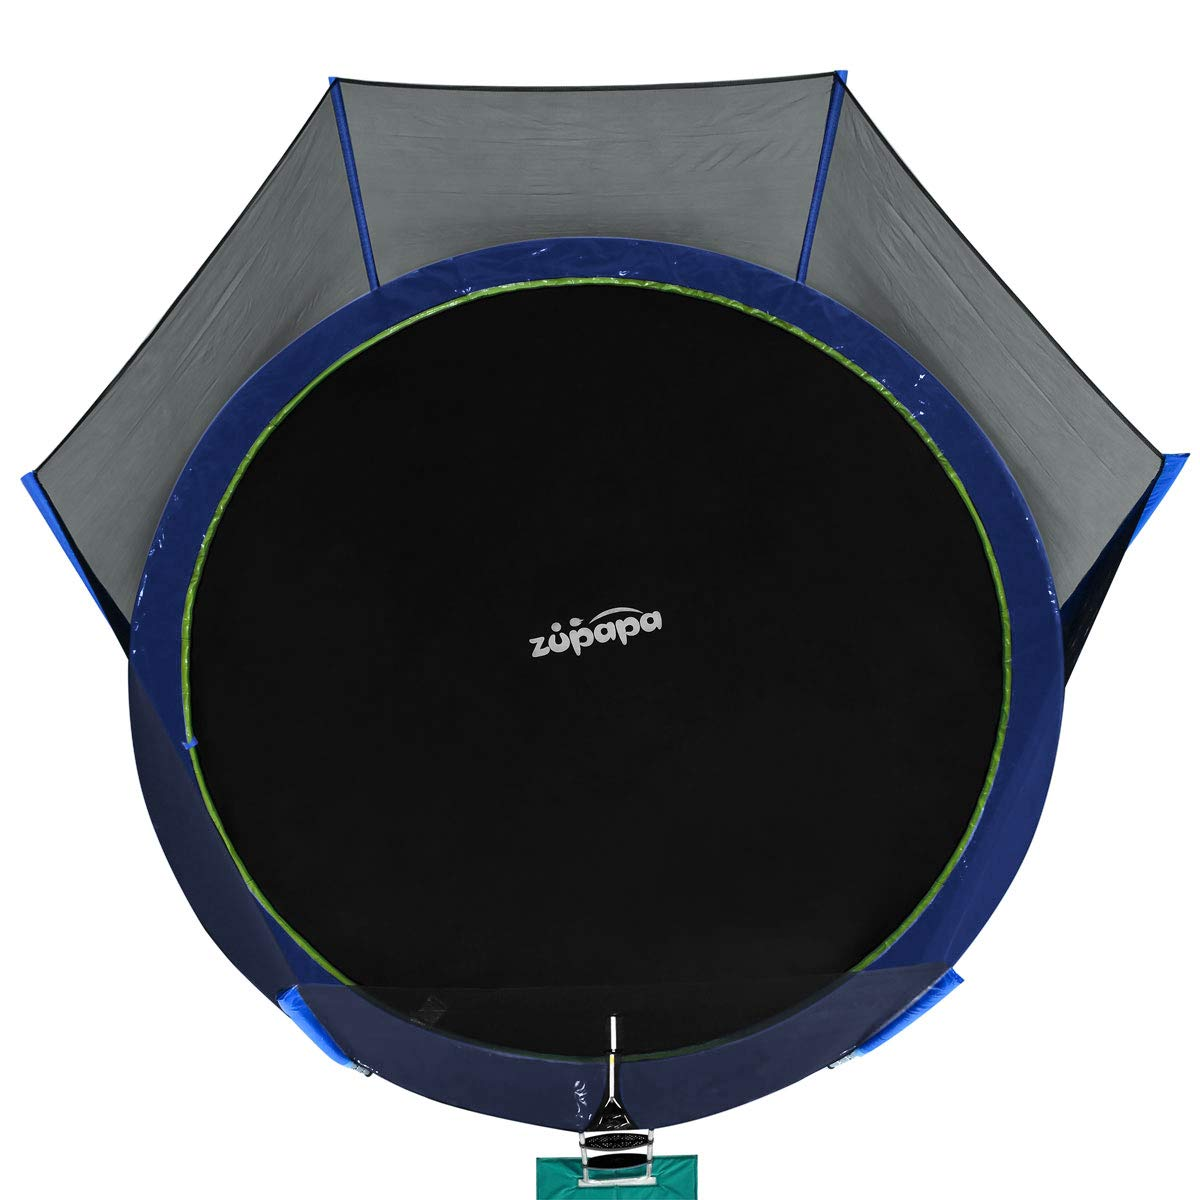 Zupapa 2019 Trampoline 15FT 14FT 12FT 10FT Newest No-Gap Jumping Mat Replacement (10FT) by Zupapa (Image #4)